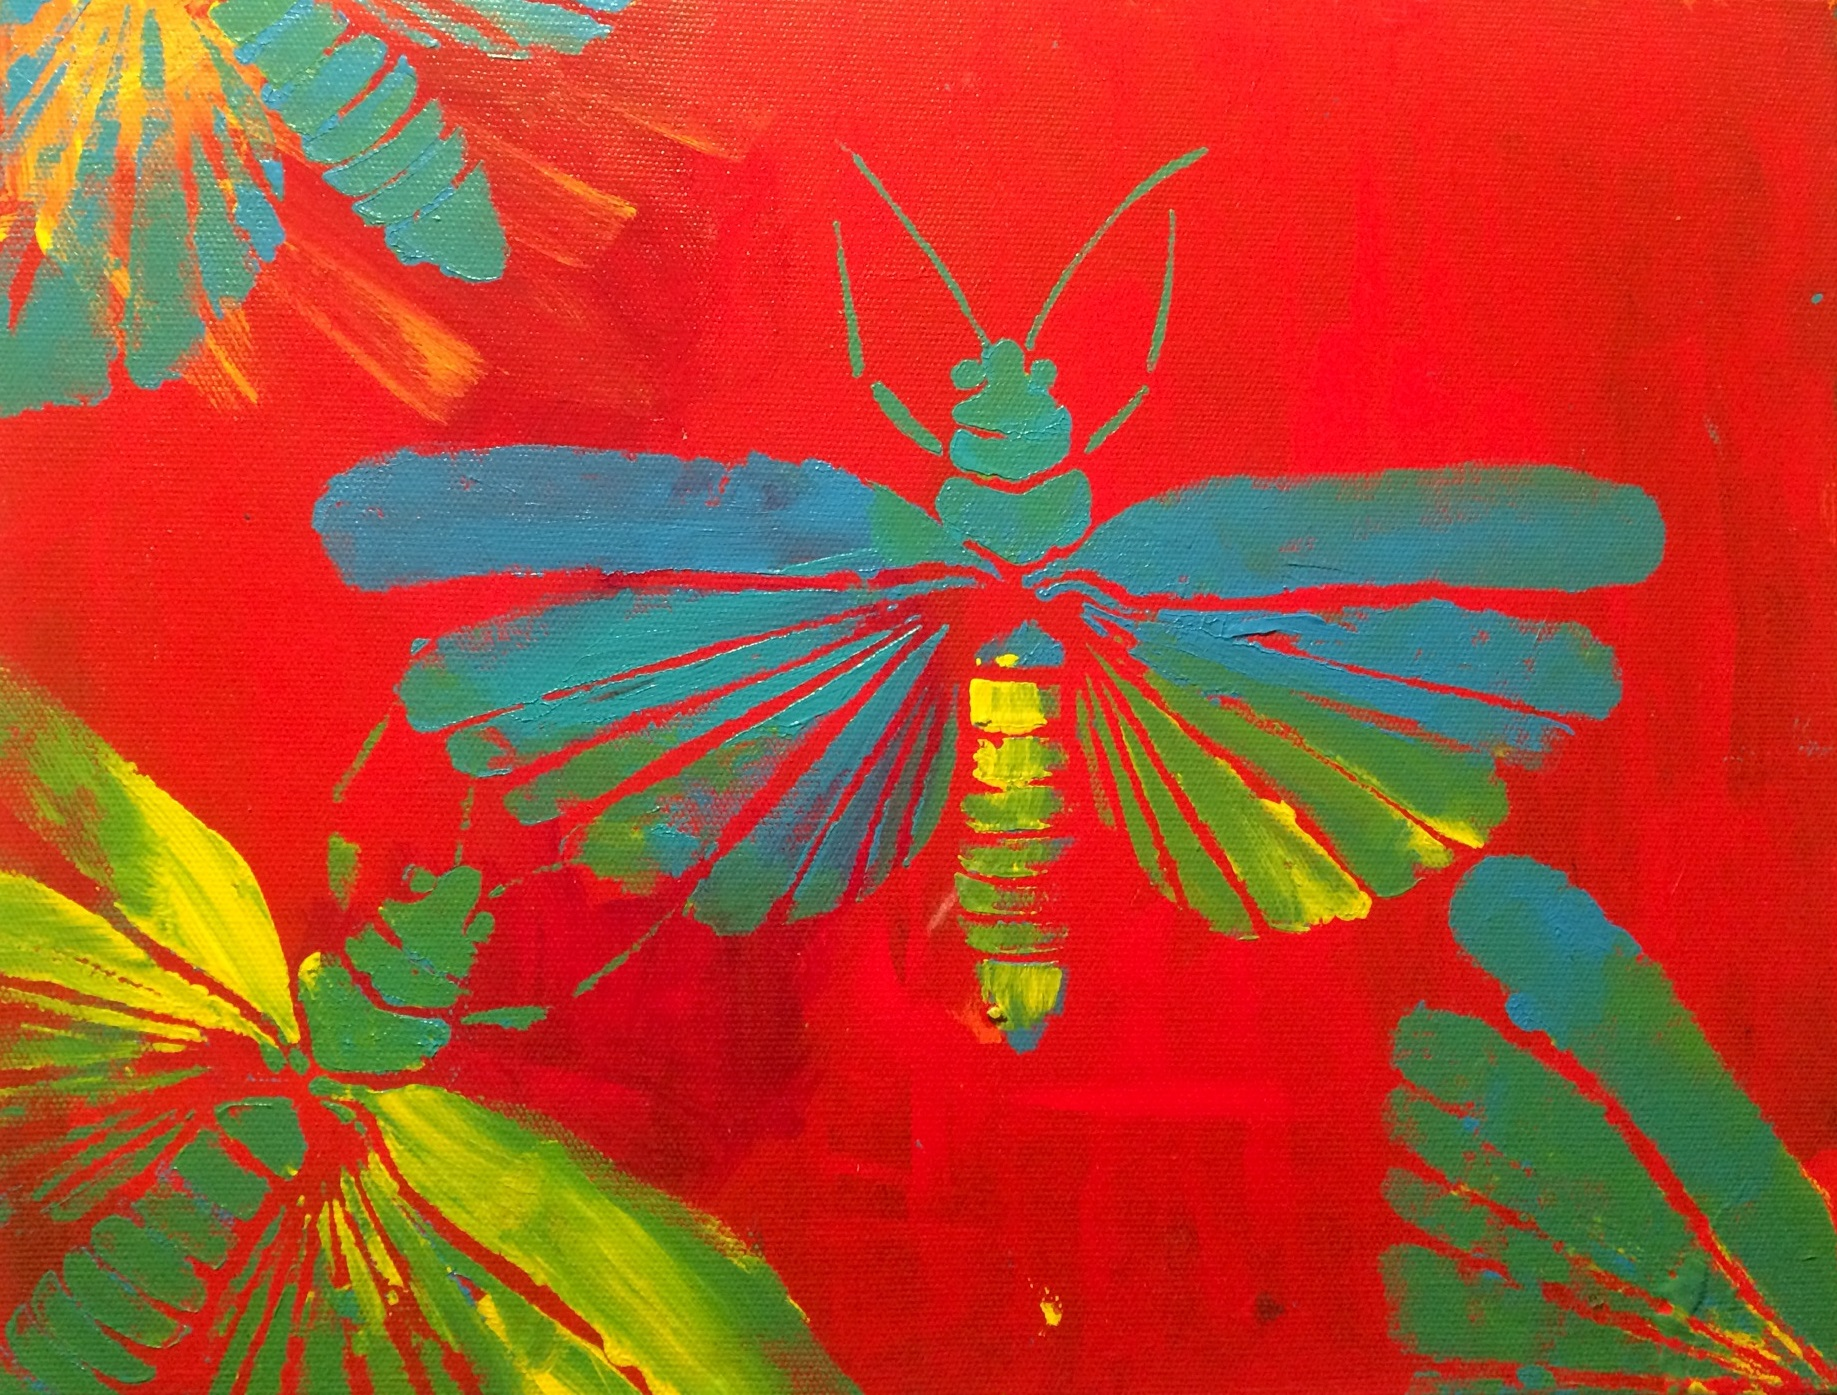 Grasshoppers with Wings - Jassie Chan